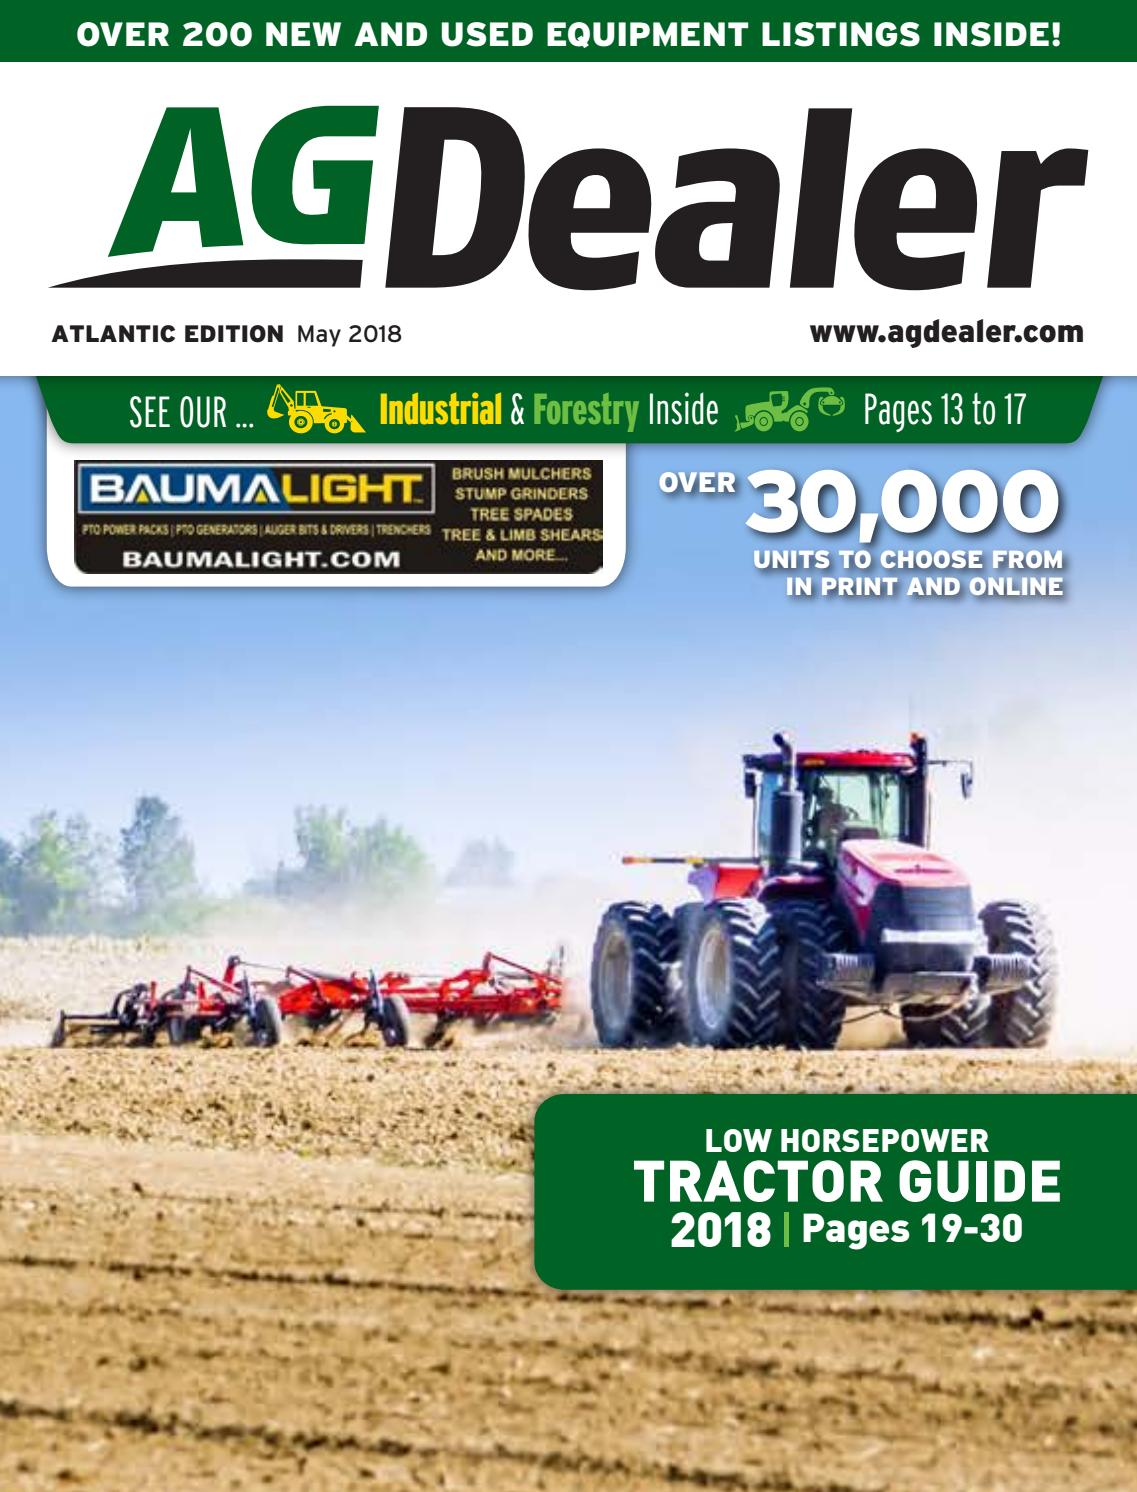 AGDealer Atlantic Edition, May 7, 2018 by Farm Business Communications -  issuu